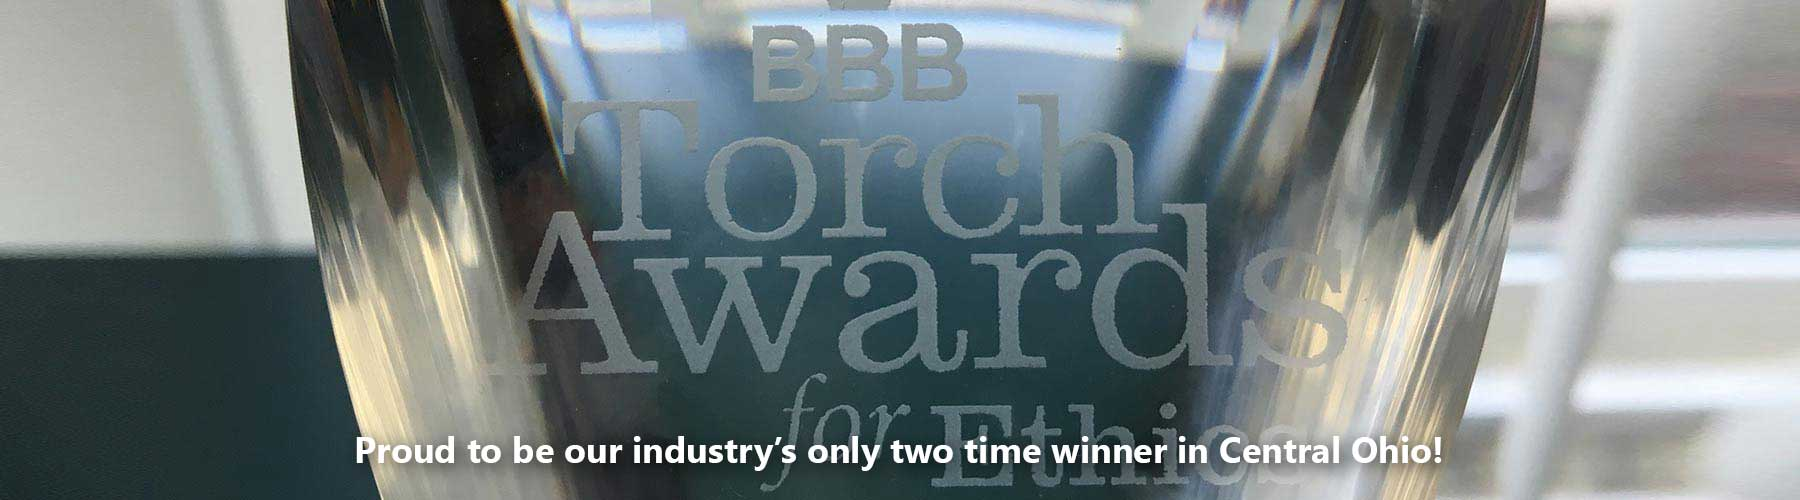 BBB's Torch Award Recipient